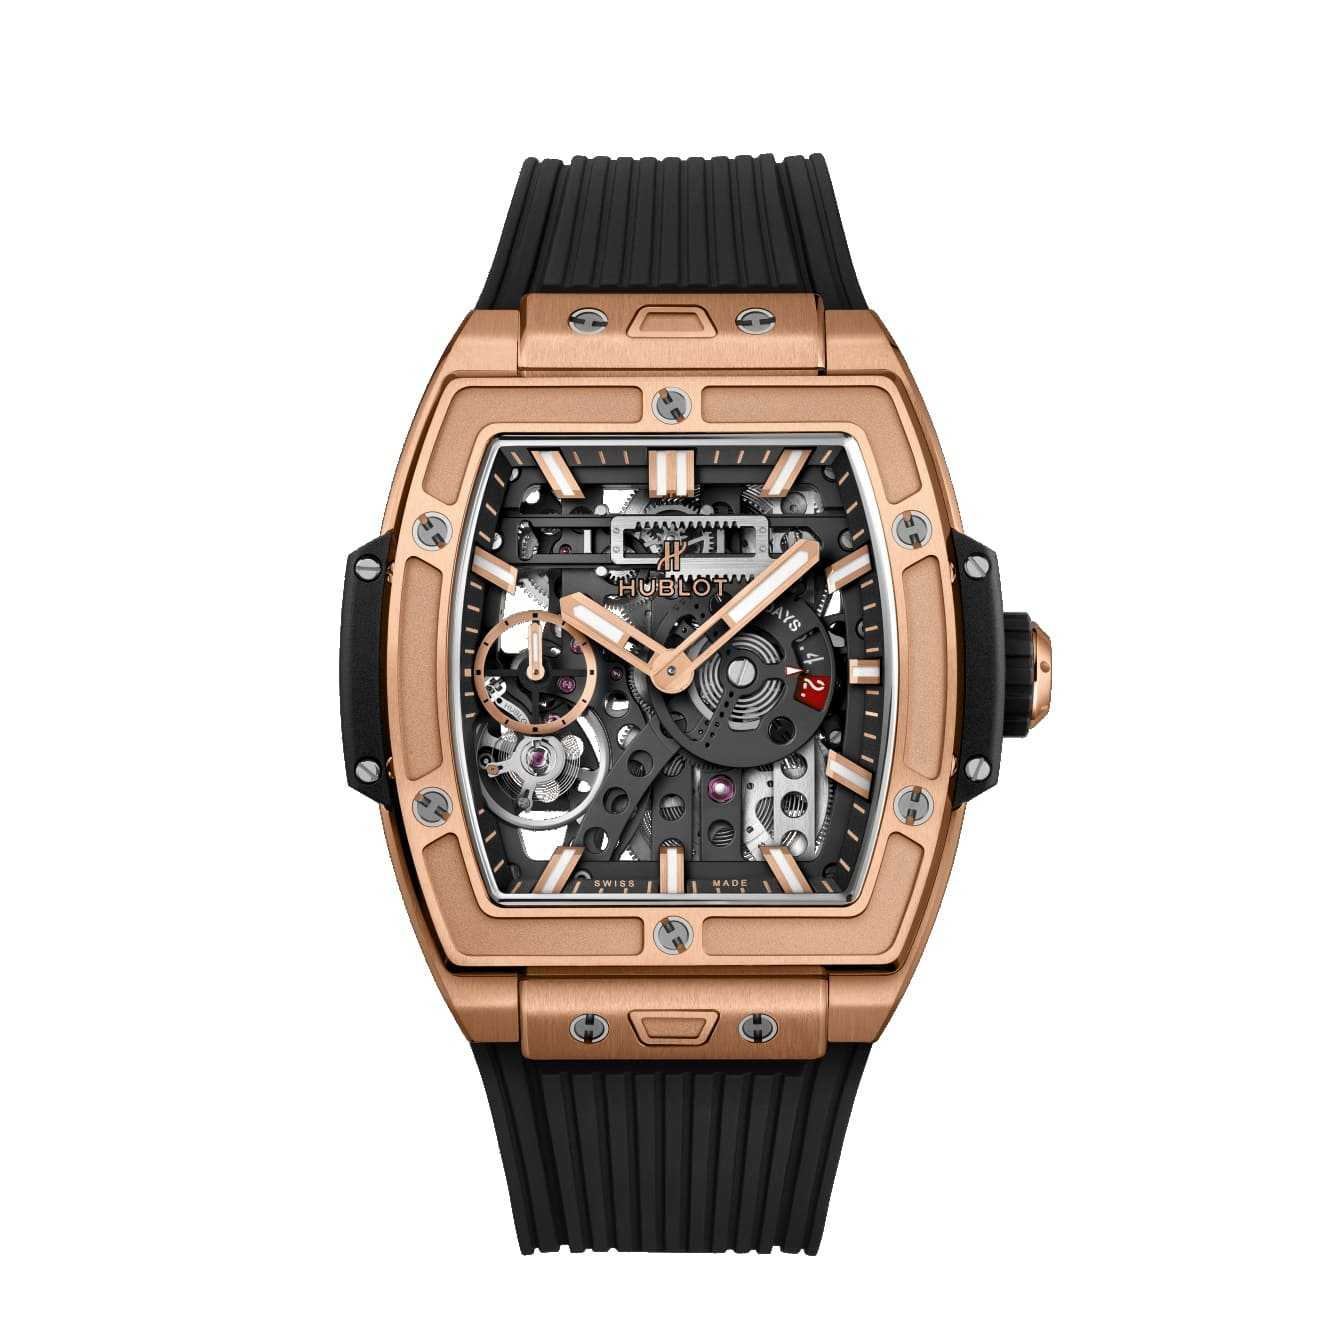 Hublot Spirit of Big Bang Meca-10 King Gold Watch